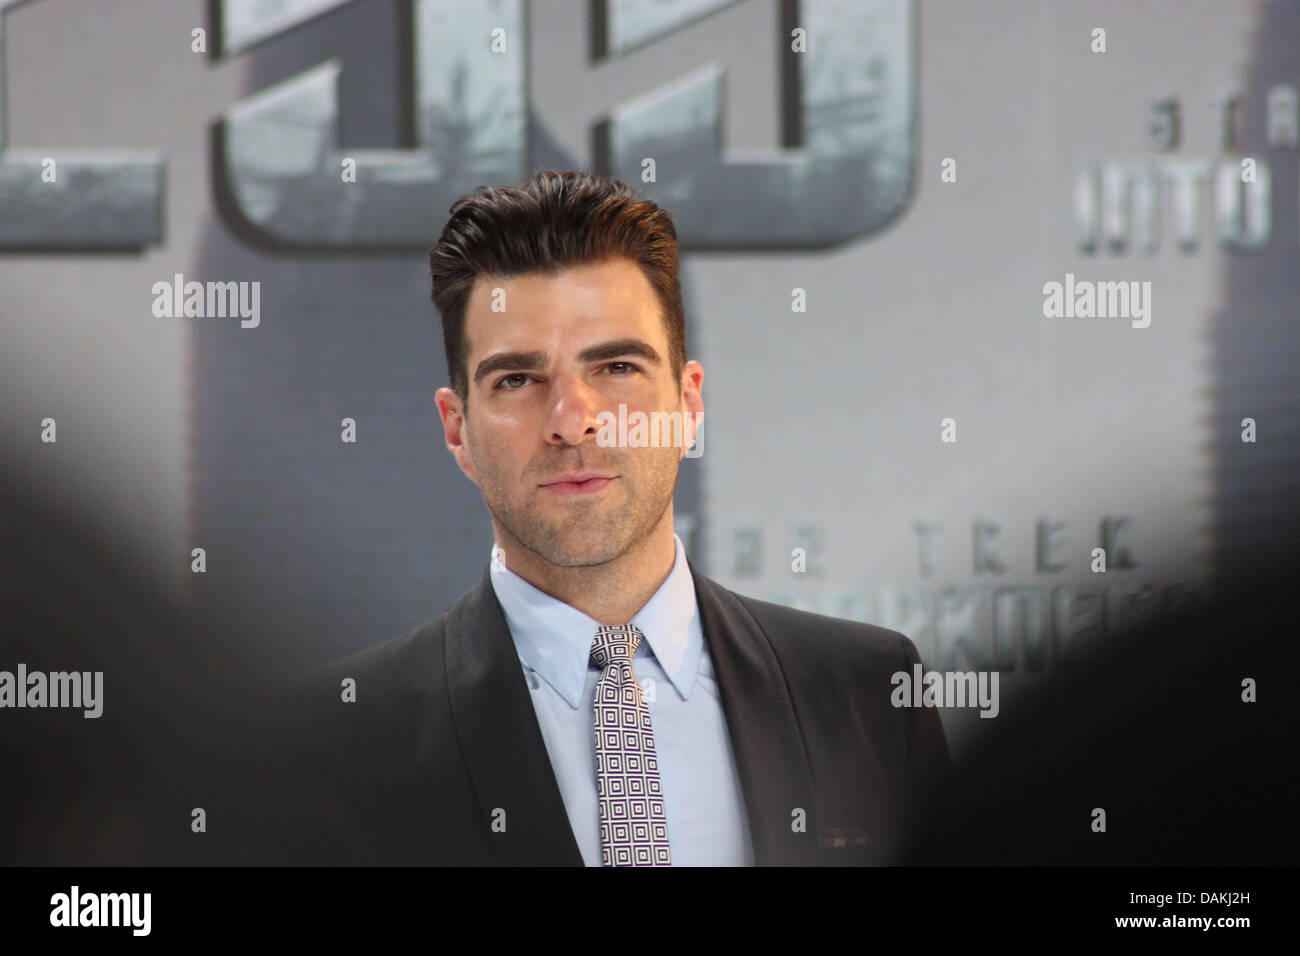 Zachary Quinto - Germany premiere of  'Star Trek Into Darkness' at CineStar, Berlin - April 29th 2013 - Stock Image